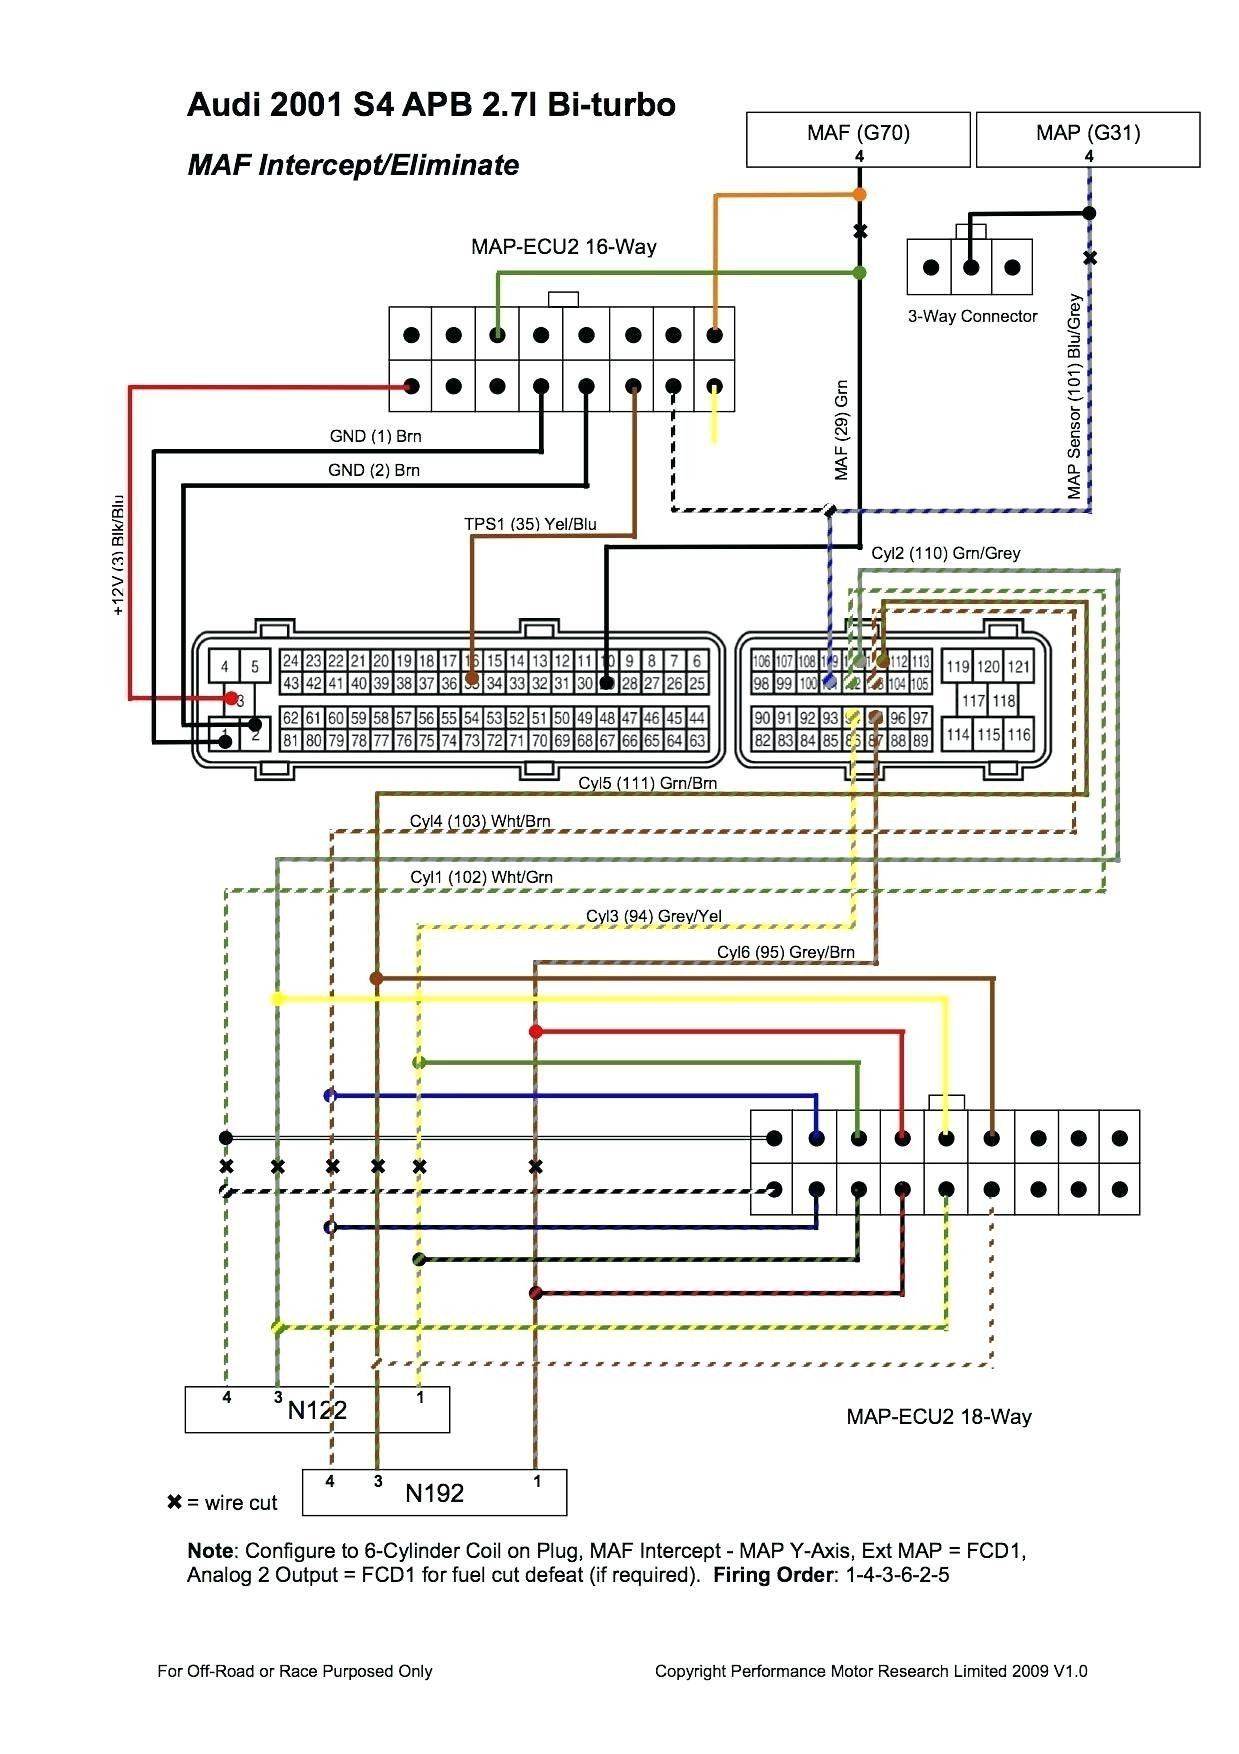 1997 Toyota Tacoma Stereo Wiring Diagram Wiring Diagram For Cat 5e Loader Ab16 Jeanjaures37 Fr